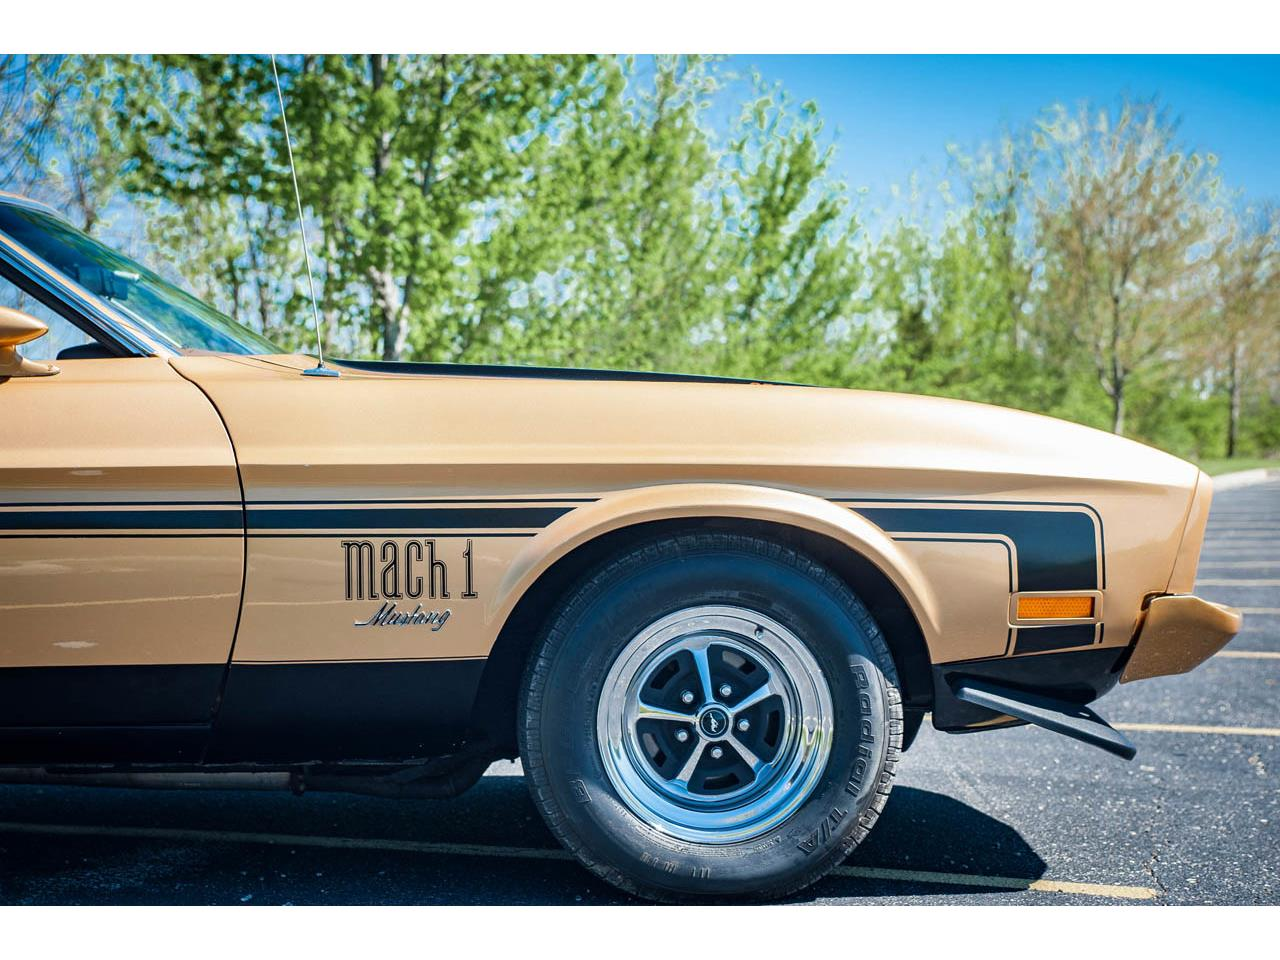 Large Picture of '73 Mustang located in Illinois - $34,500.00 Offered by Gateway Classic Cars - St. Louis - QB8T